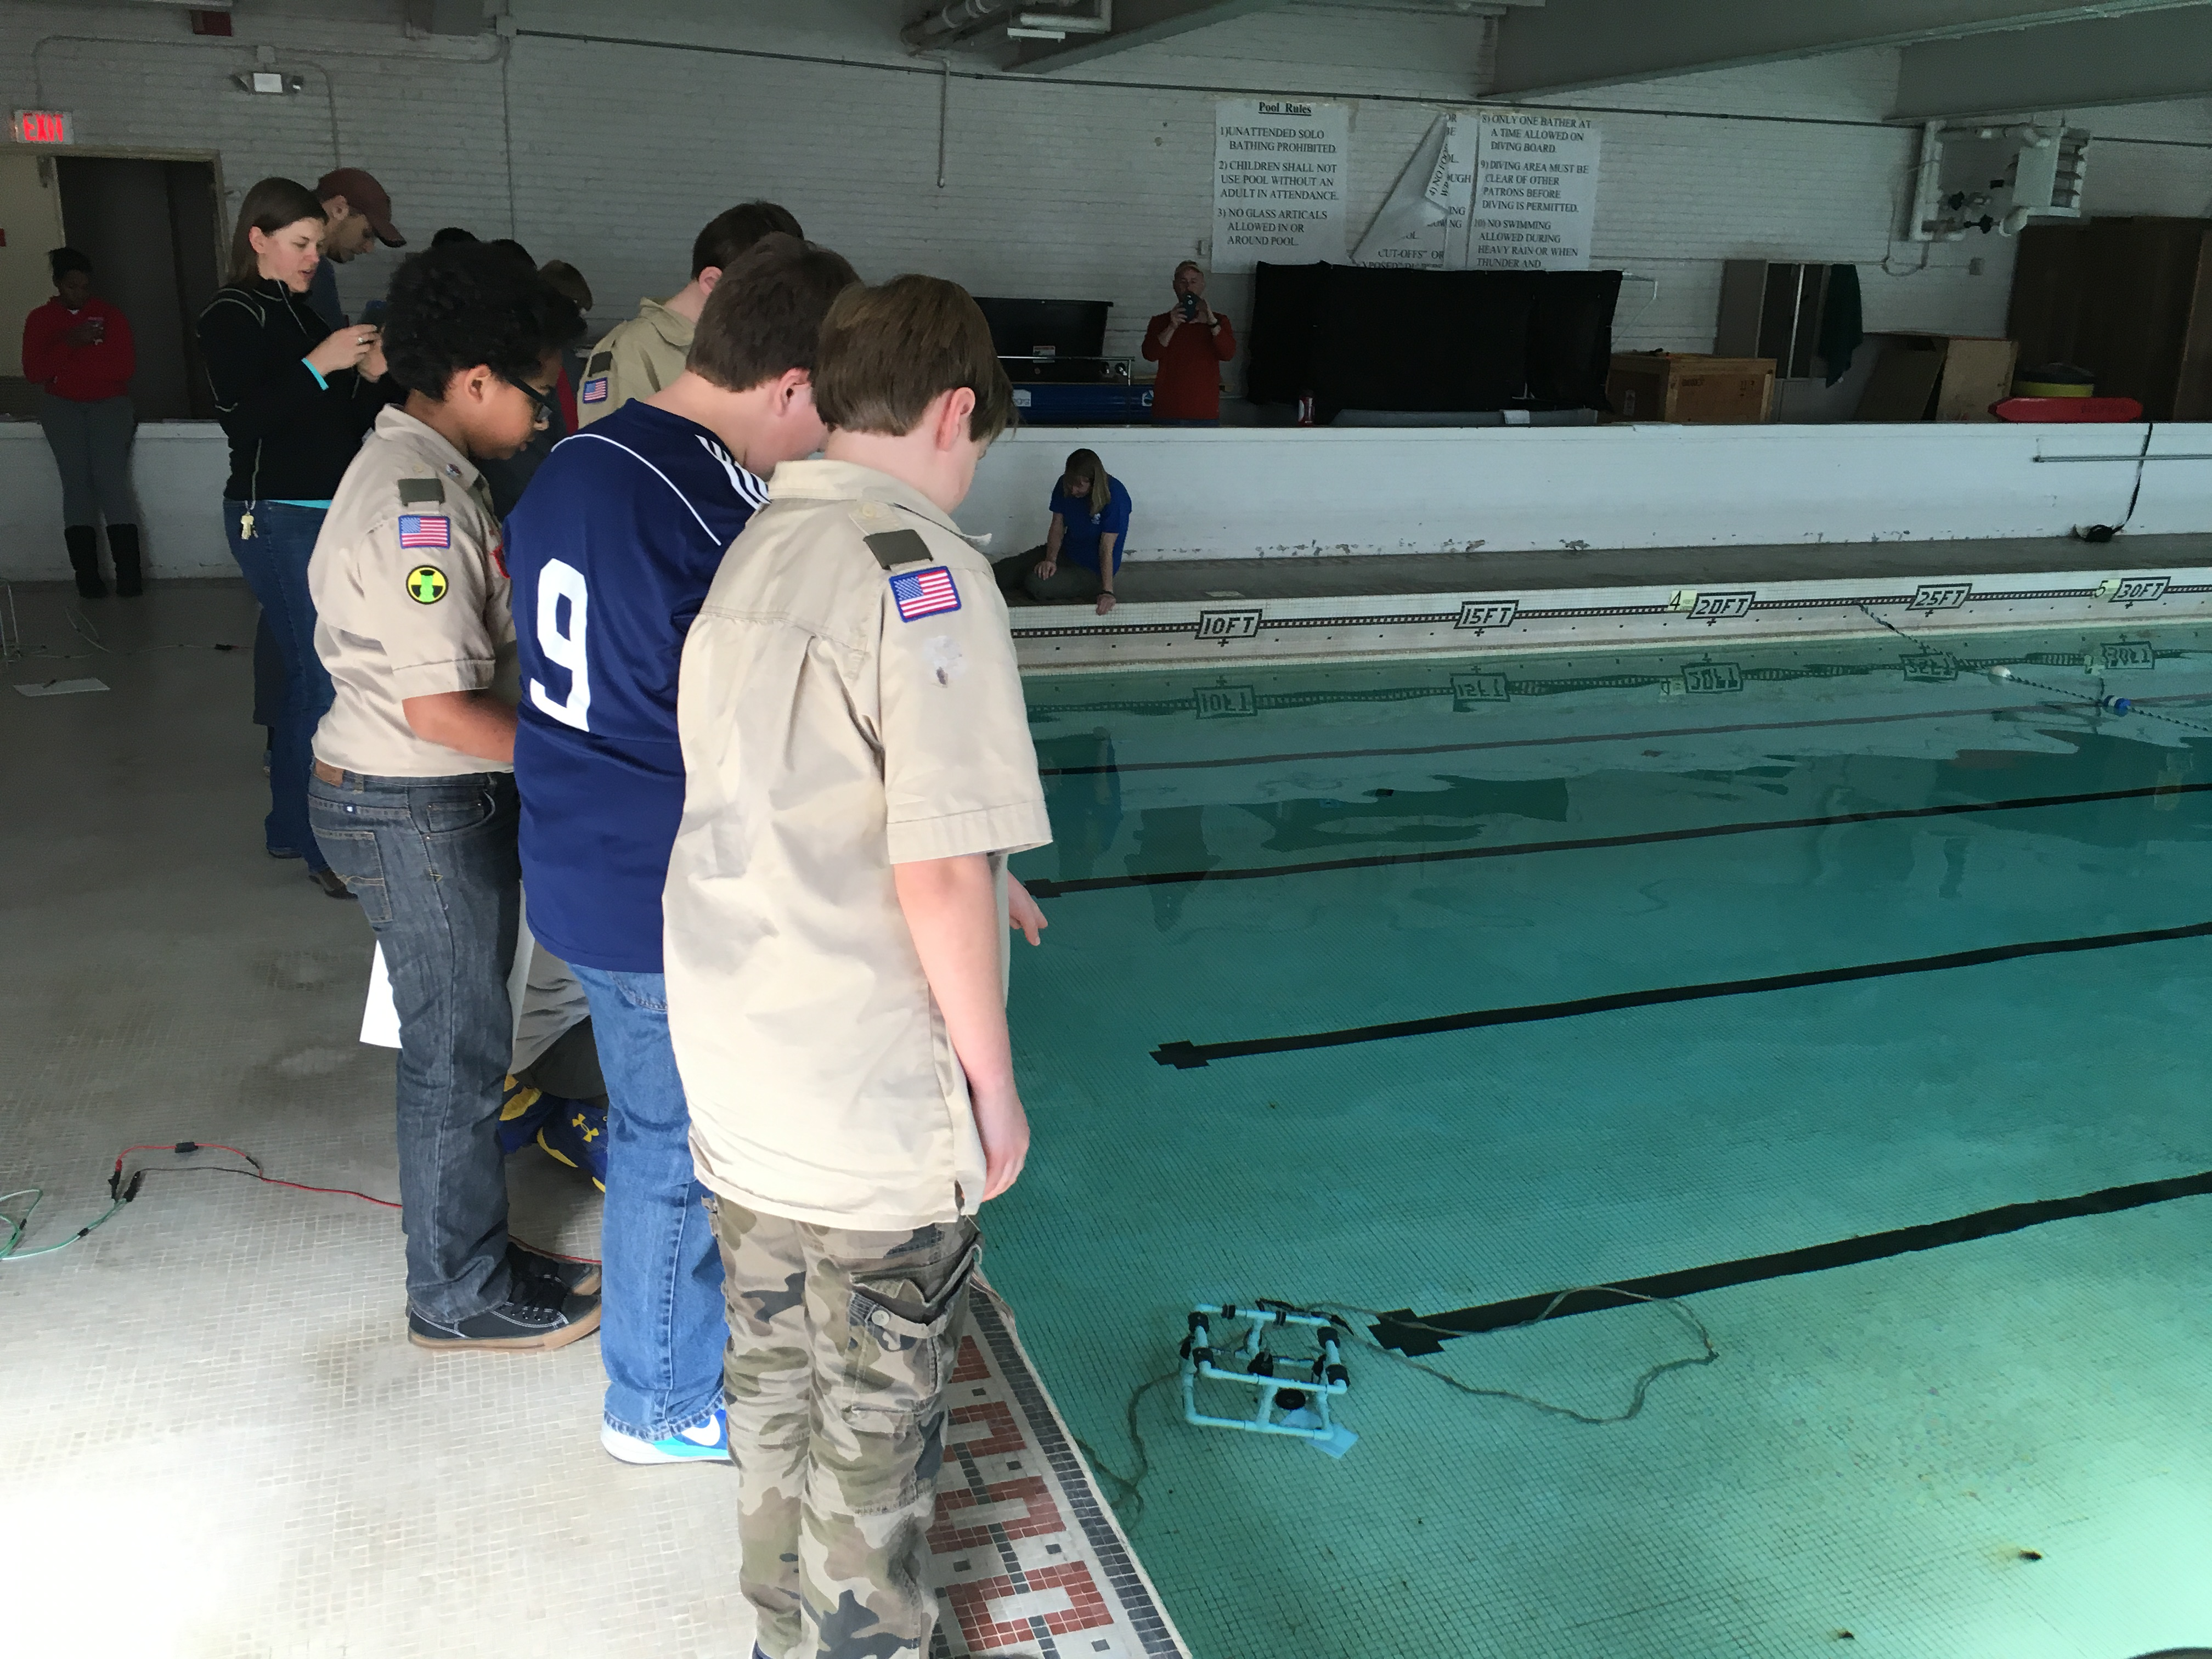 <div style='color:#000000;'><br /><br /><h2>2016 Boy Scouts Advancarama- Scouts driving model ROVs (remotely operated vehicles) to learn about bottom topography.</h2>(C)&nbsp;ECOGIG</div>